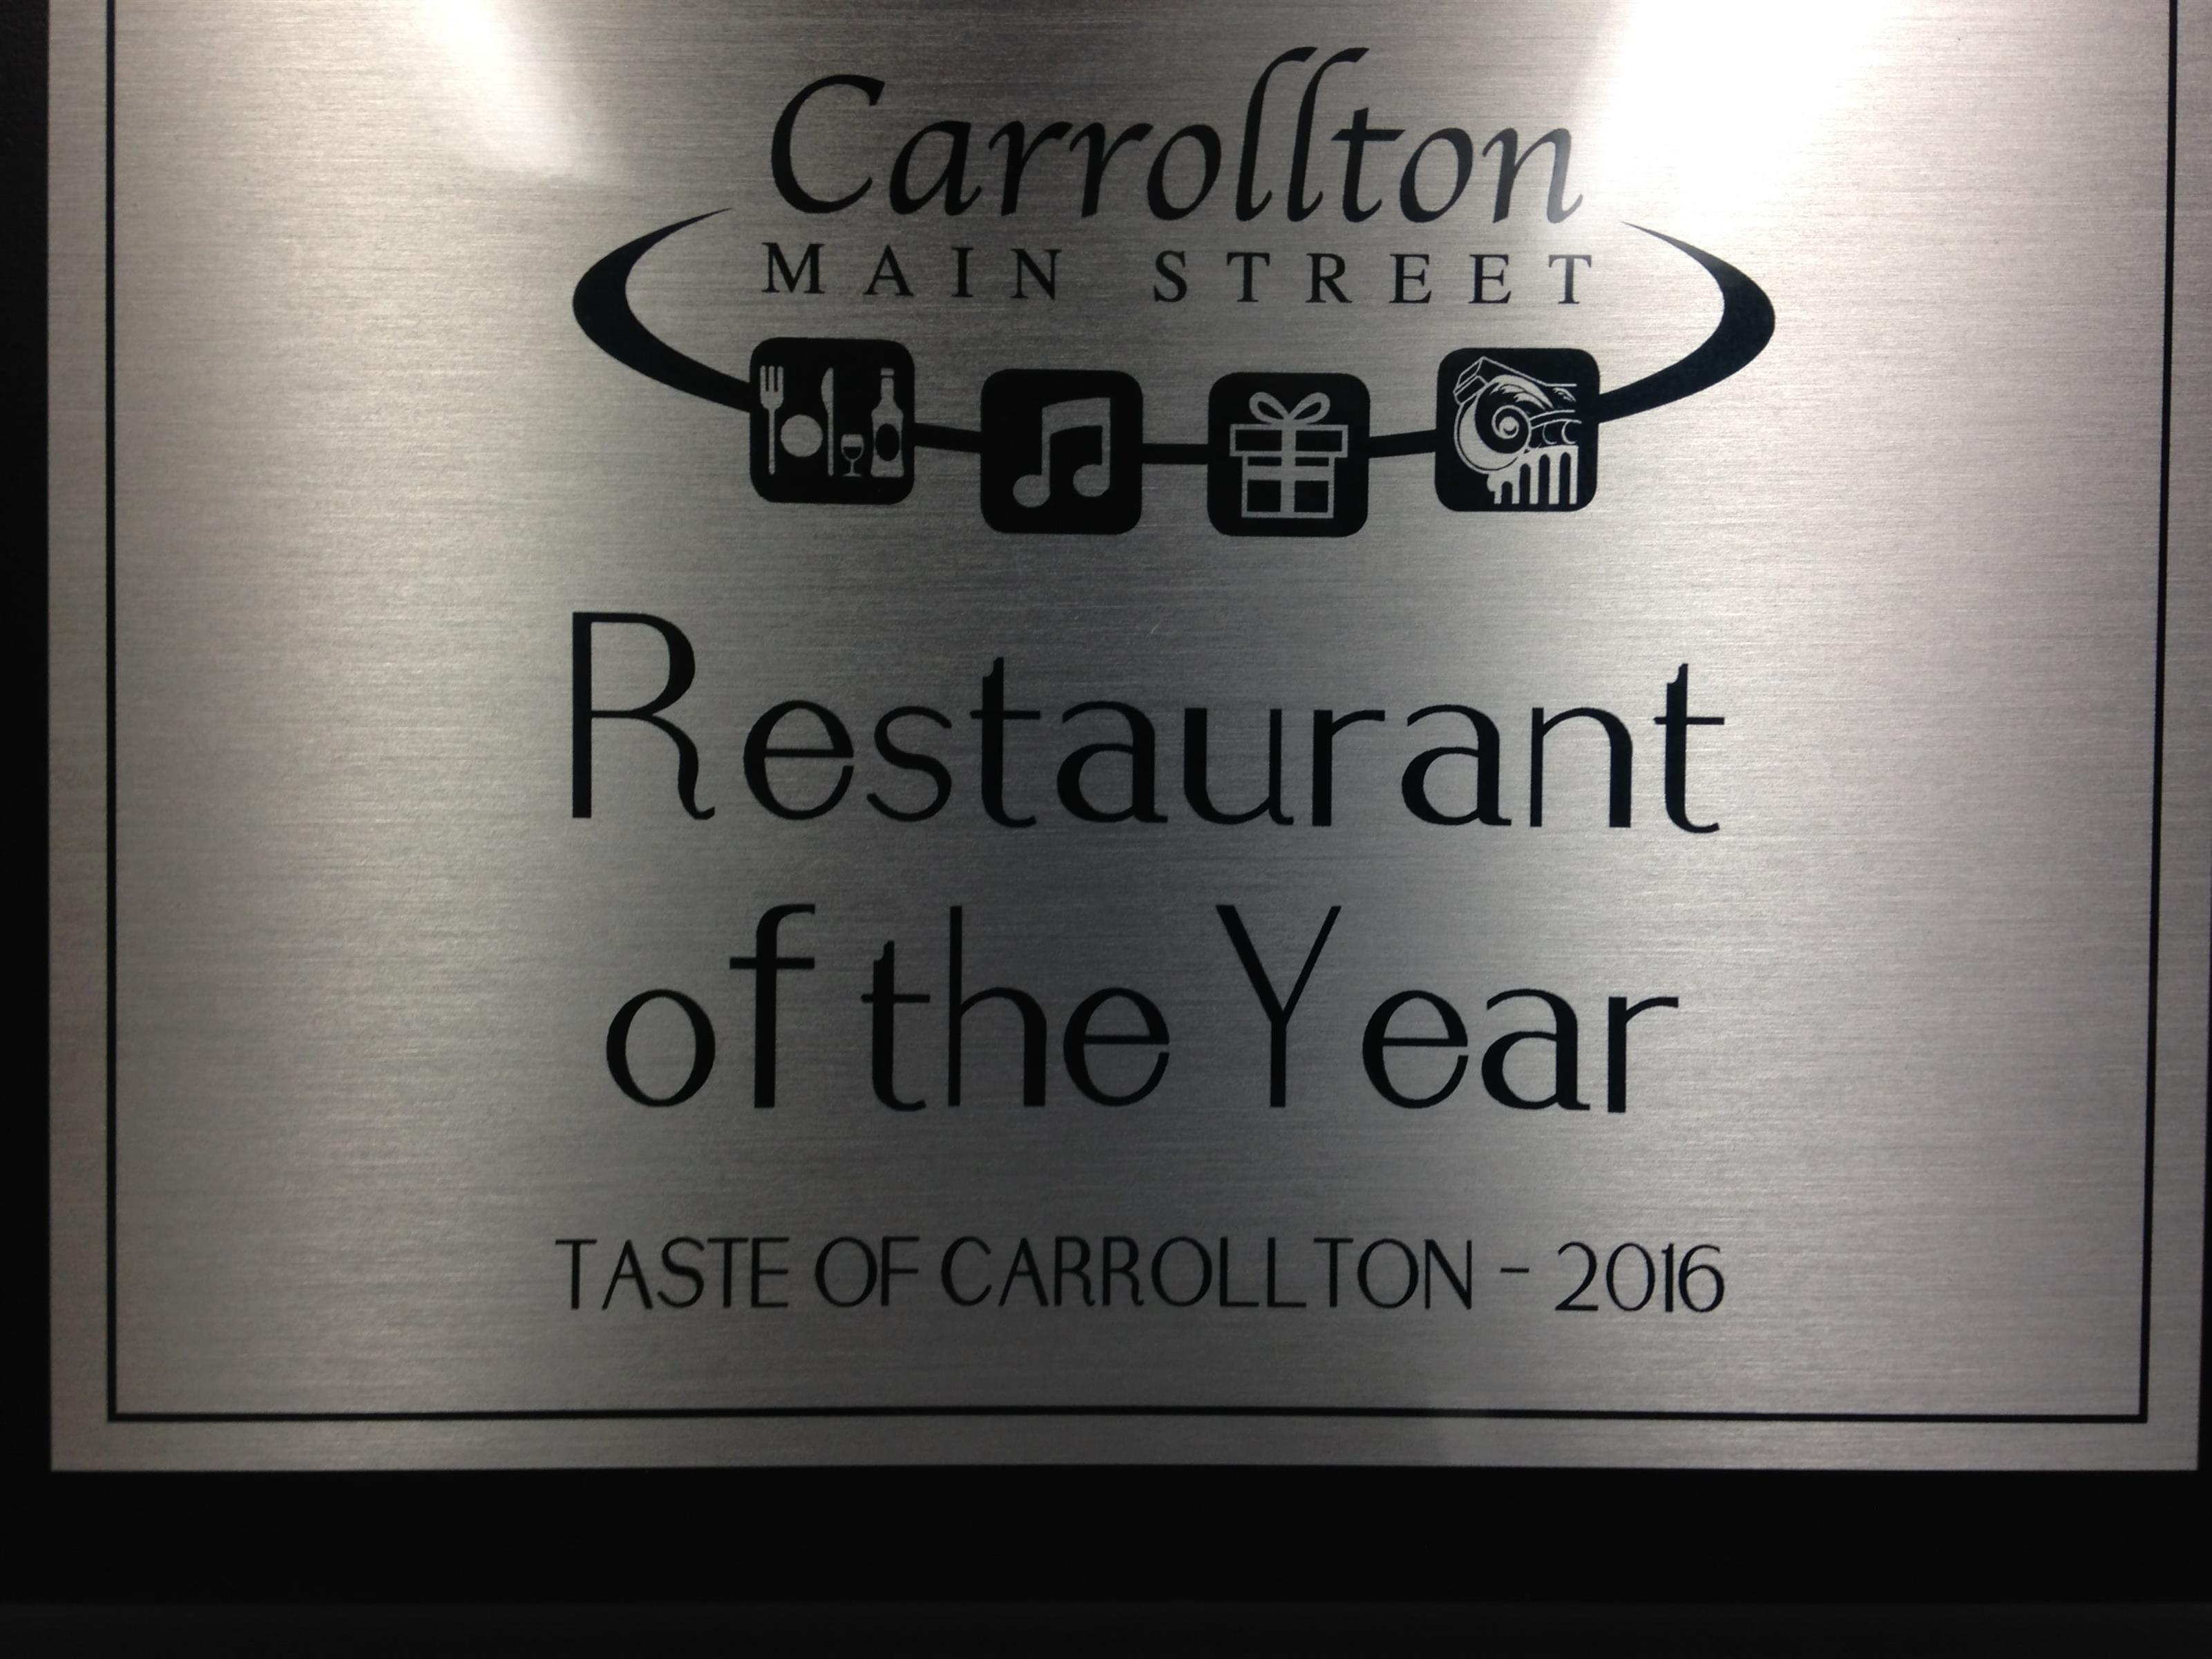 carrollton main street restaurant of the year taste of carrollton 2016